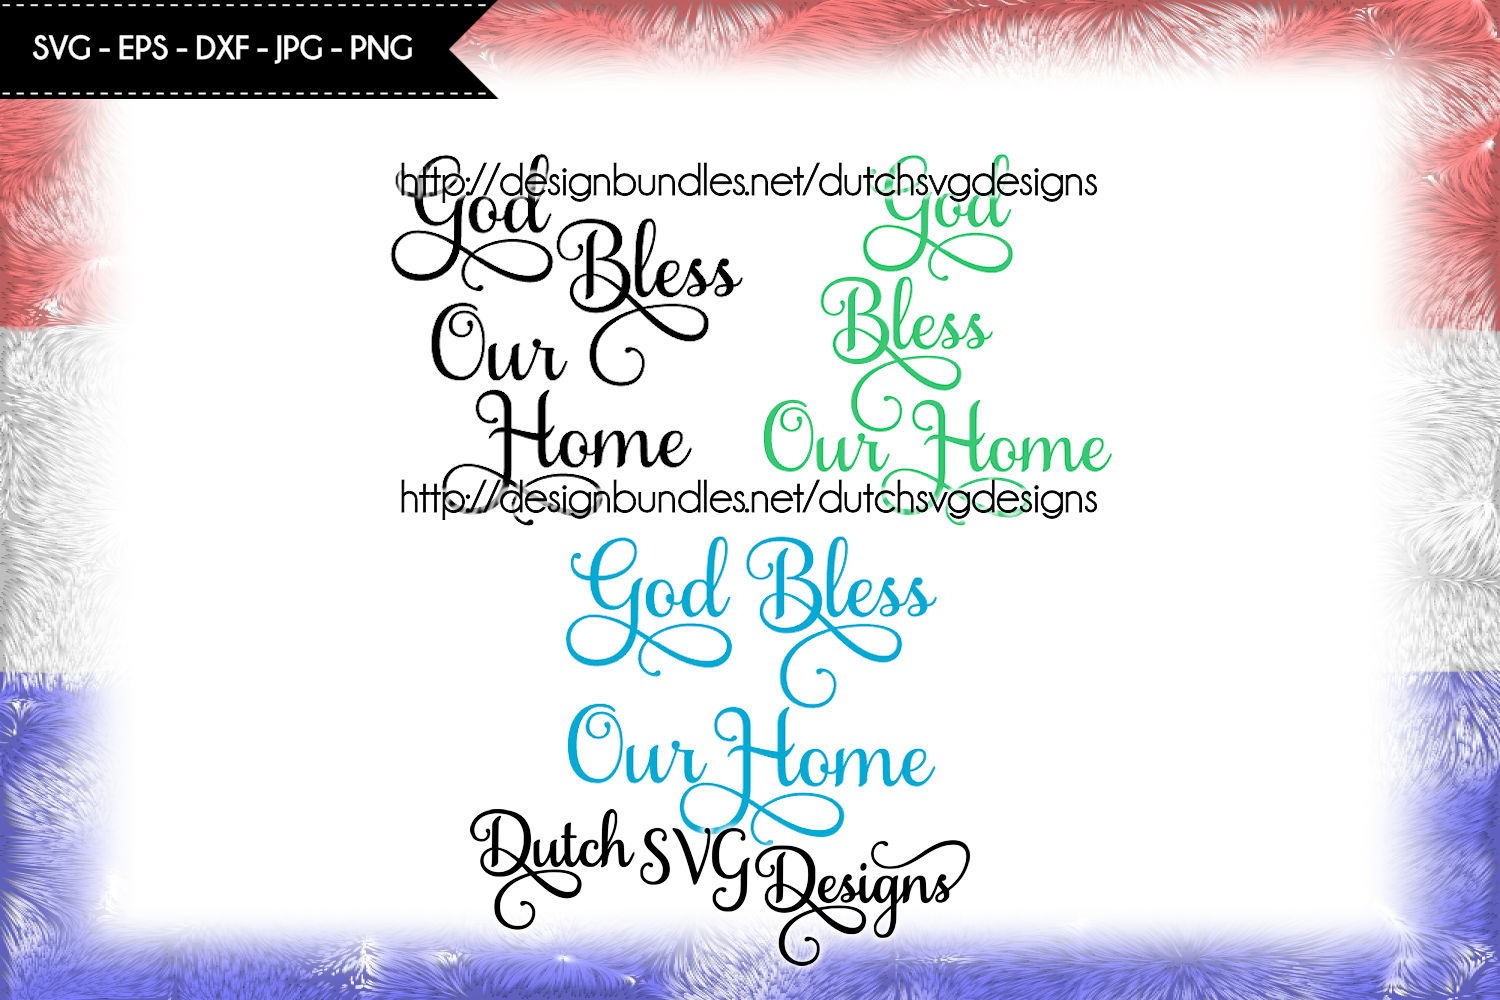 Text cutting file God Bless our Home, svg cut file example image 1